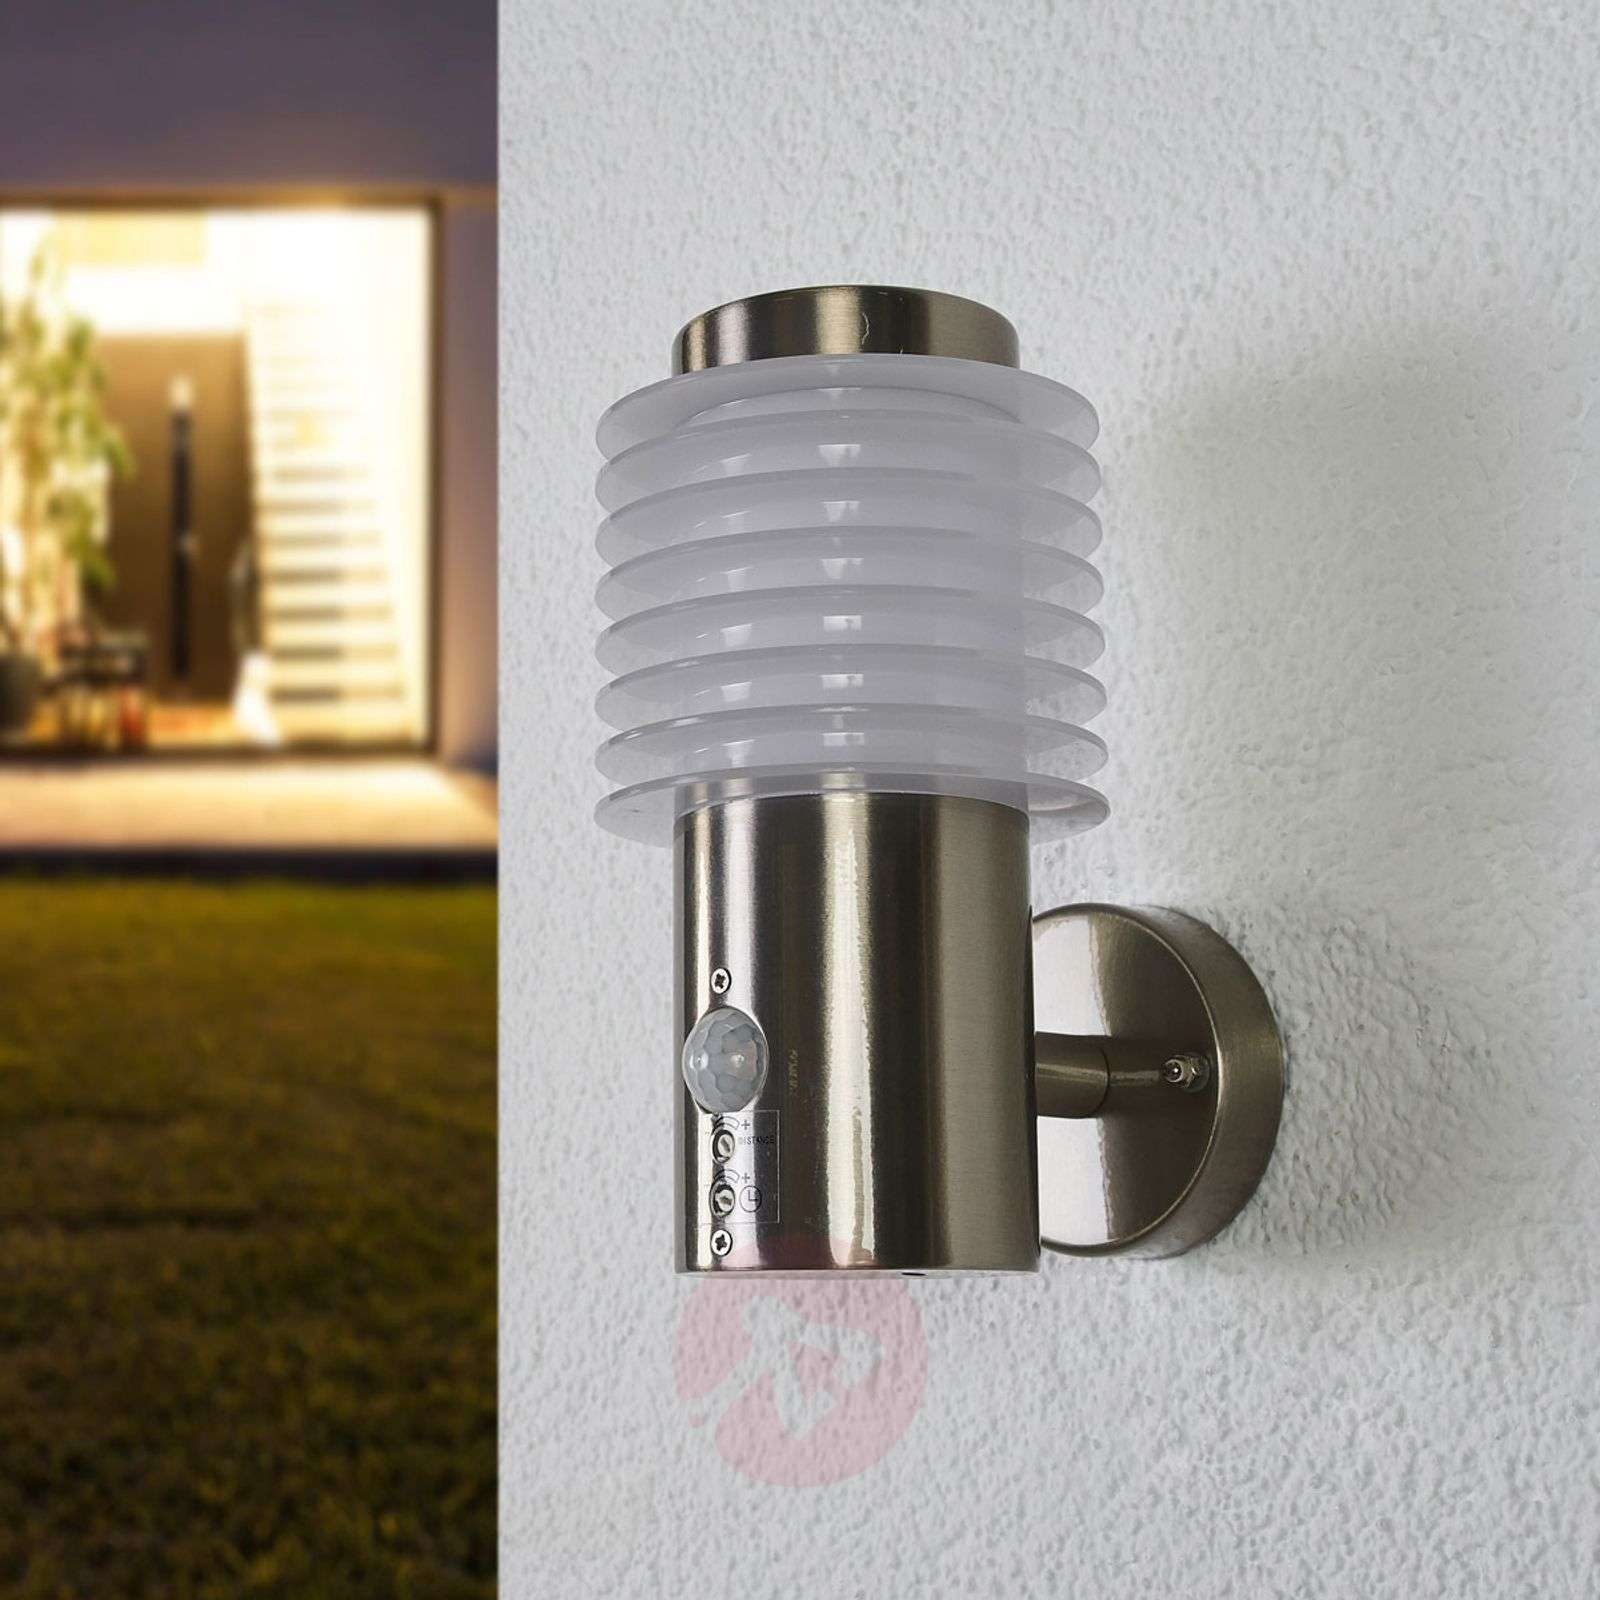 Roxy LED outdoor wall lamp with sensor-9988120-01